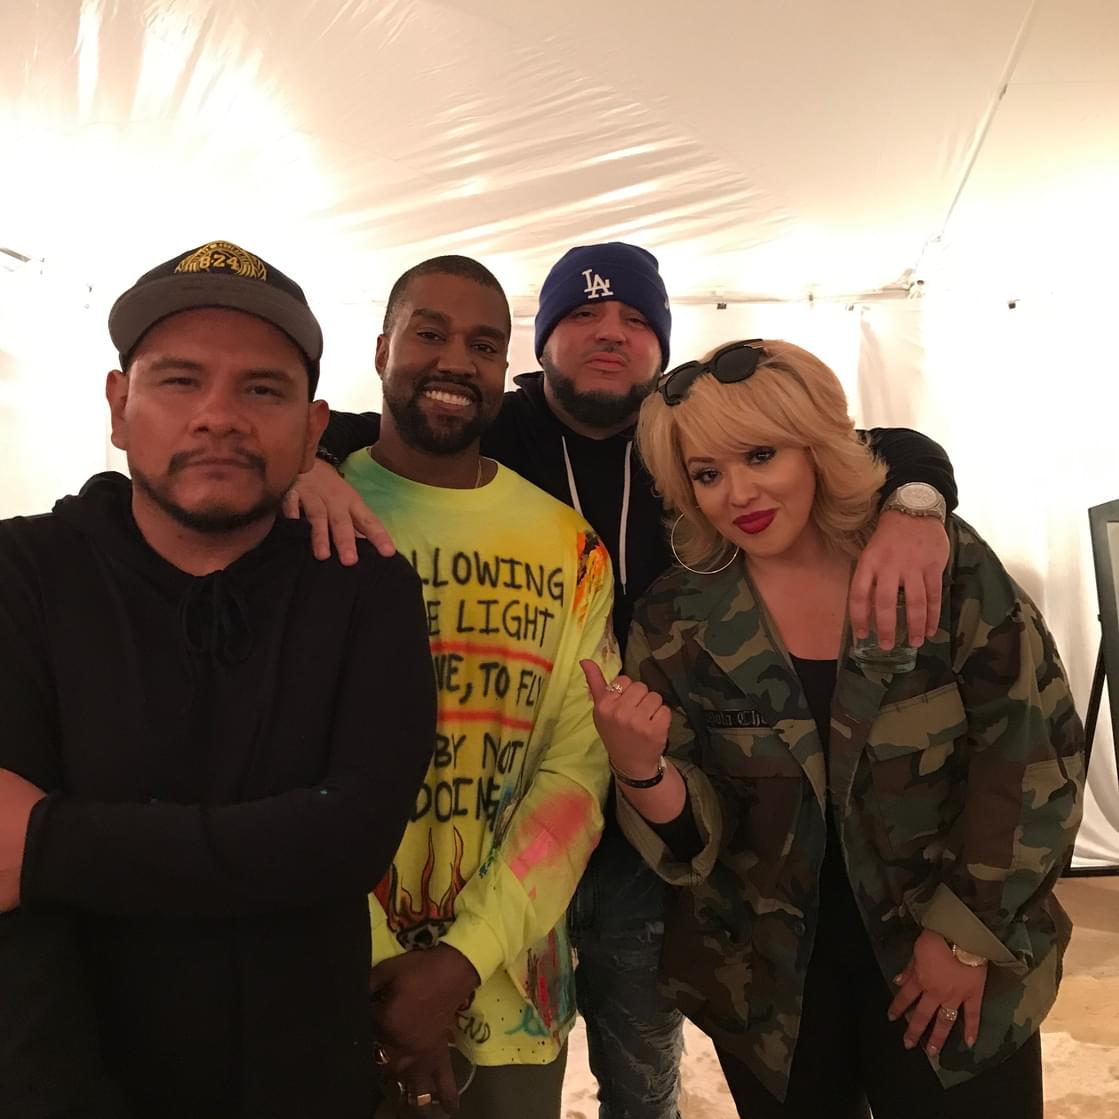 J Cruz, DJ Felli Fel, & Cece Hit Up Exclusive Kanye West